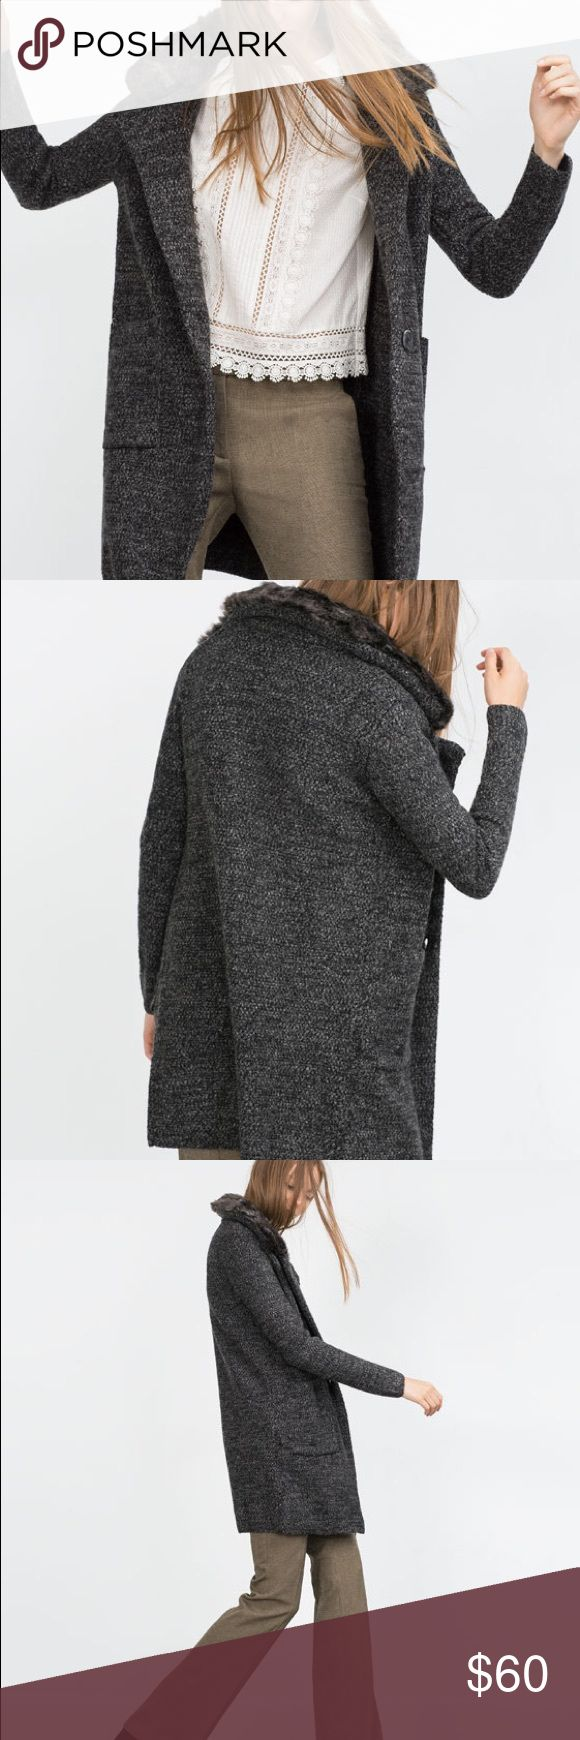 Zara: NWT Sweater, fur collar, thick, button up Zara: NWT, Gorgeous thick & practical button up sweater/cardigan with on trend fur collar, neutral dark grey, dress up for a night out or wear over jeans/ leggings for a more casual look. Zara Sweaters Cardigans